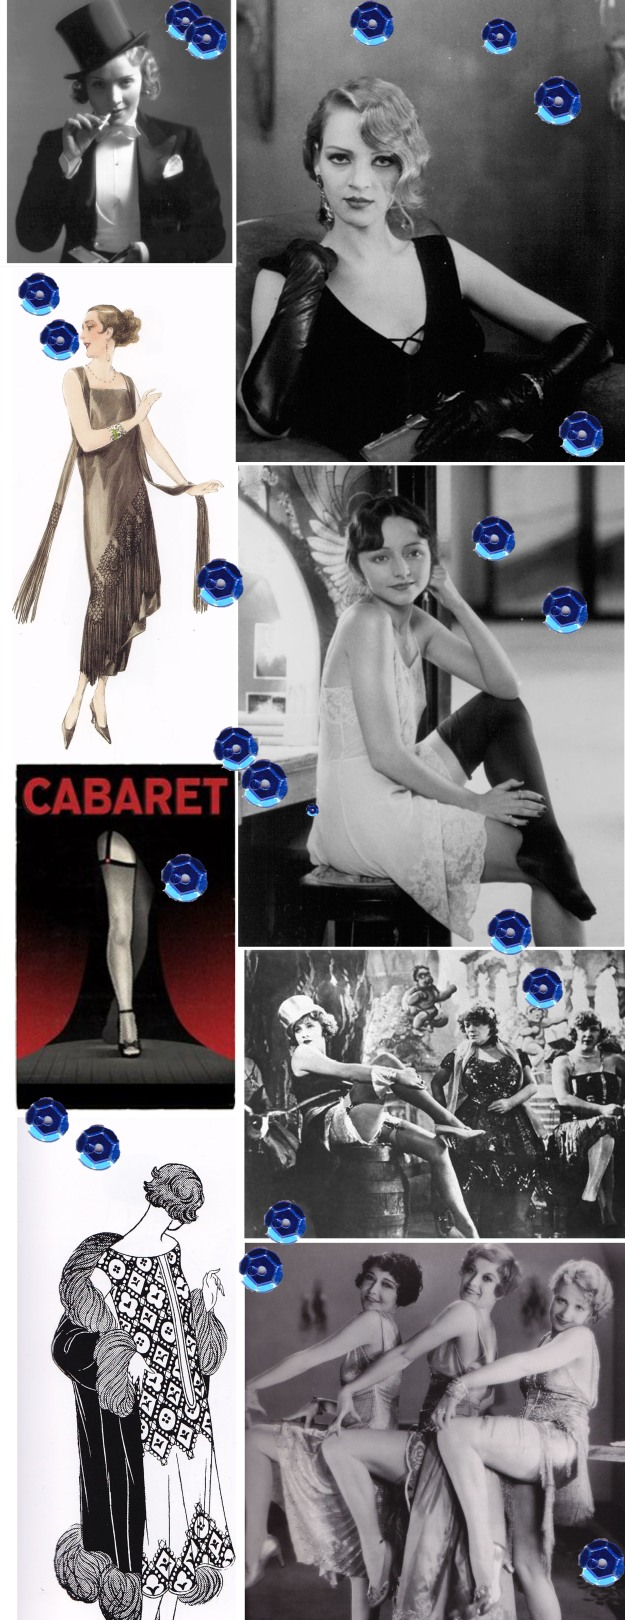 Marlene Dietrich top hat, Uma Thurman, Henry and June, Cabaret illustration, Joan Crawford, 1920s fashion illustration